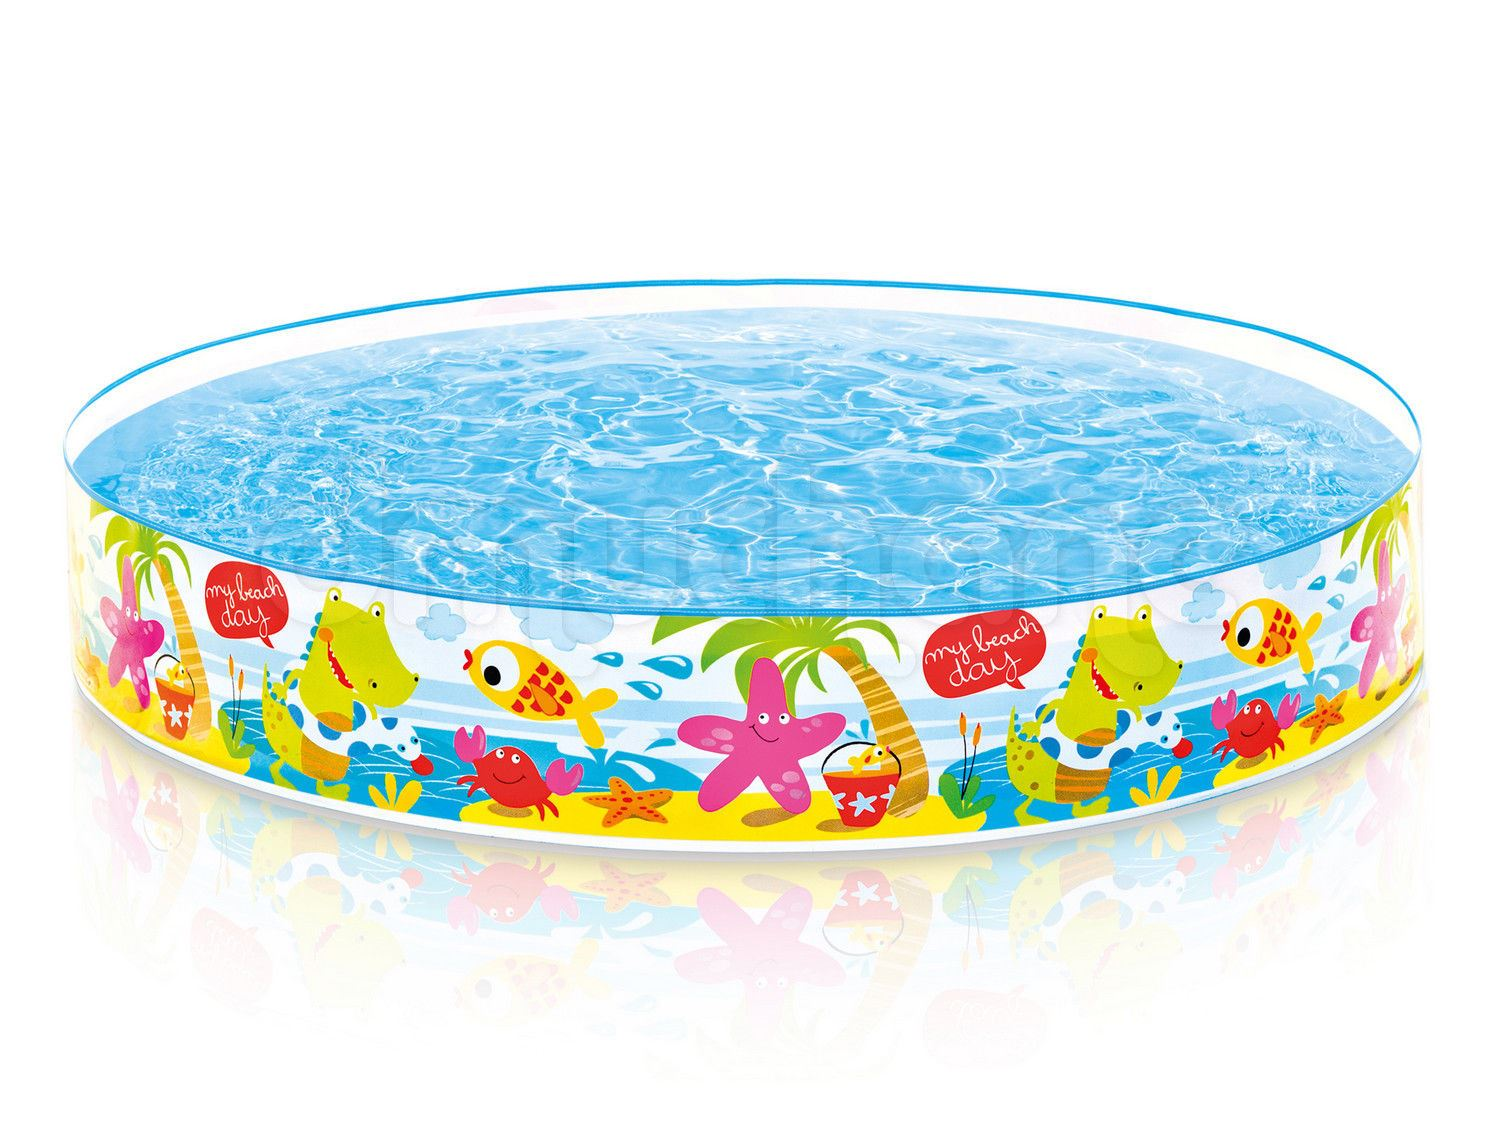 Intex 56451np 5 Ft X 10-inch Under The Palm Trees Snap Set Pool ?? Multi-colour